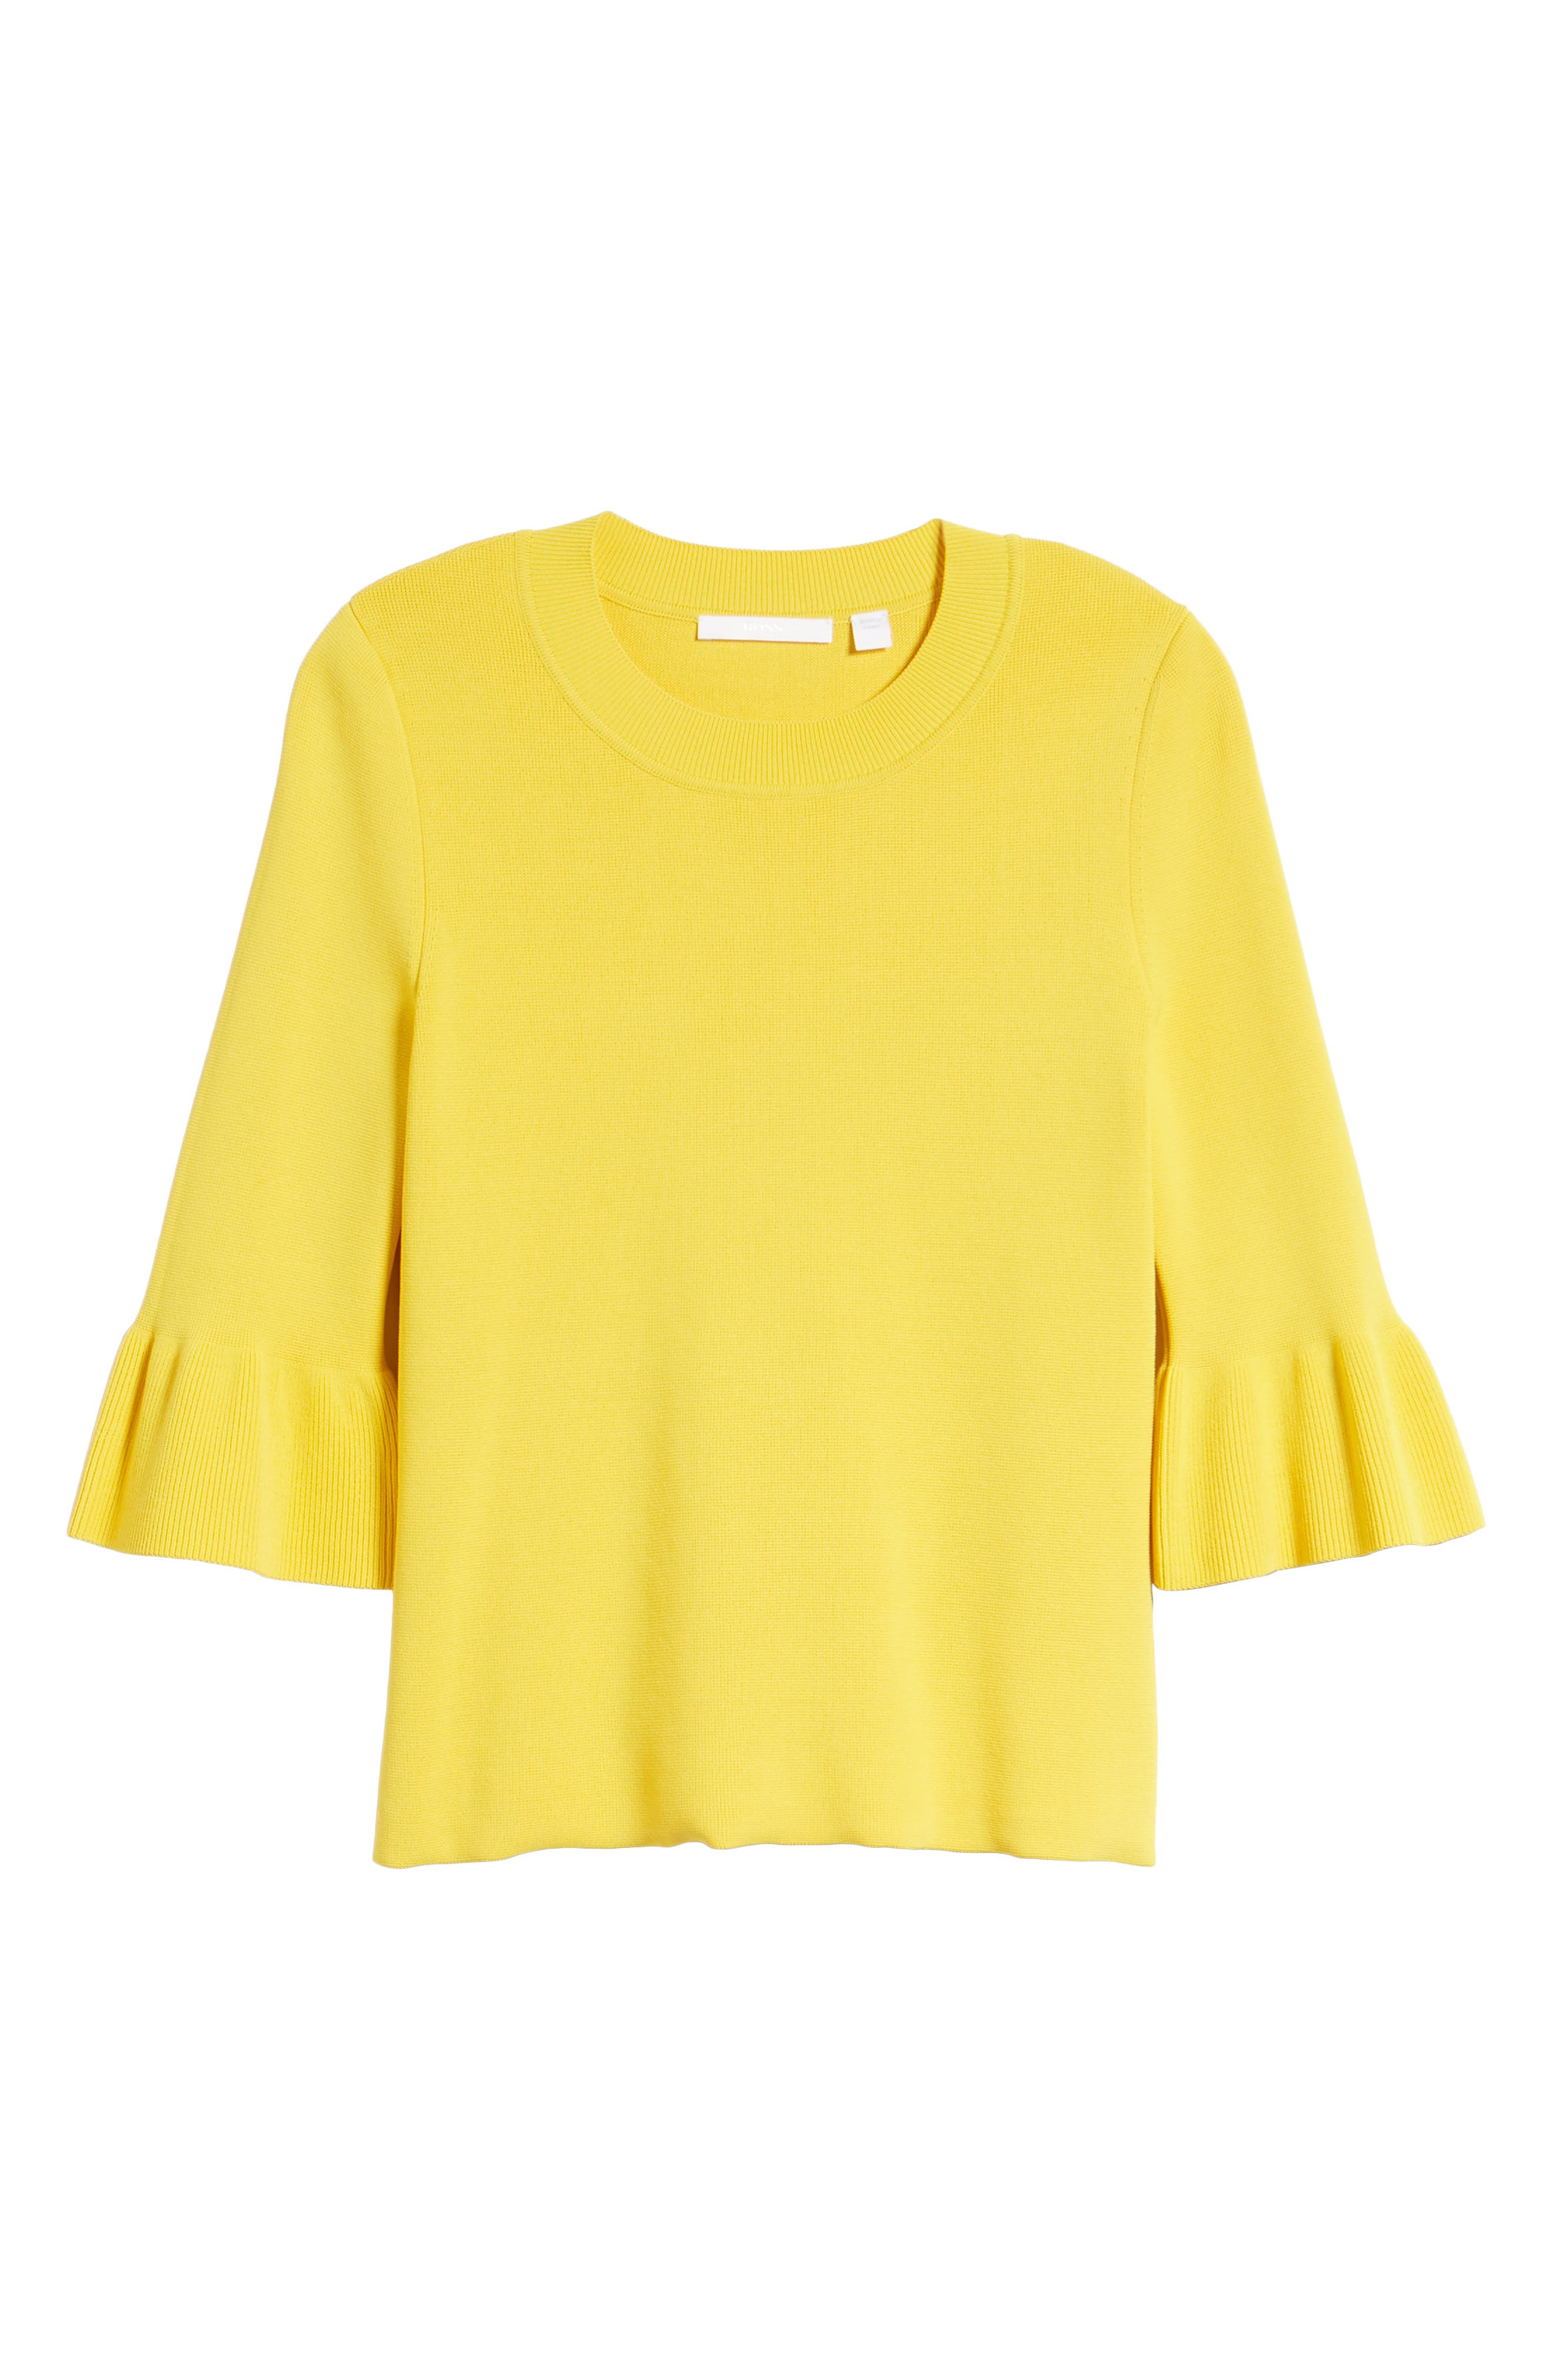 Fenella Ruffle Sleeve Sweater,                             Alternate thumbnail 7, color,                             Sun Yellow